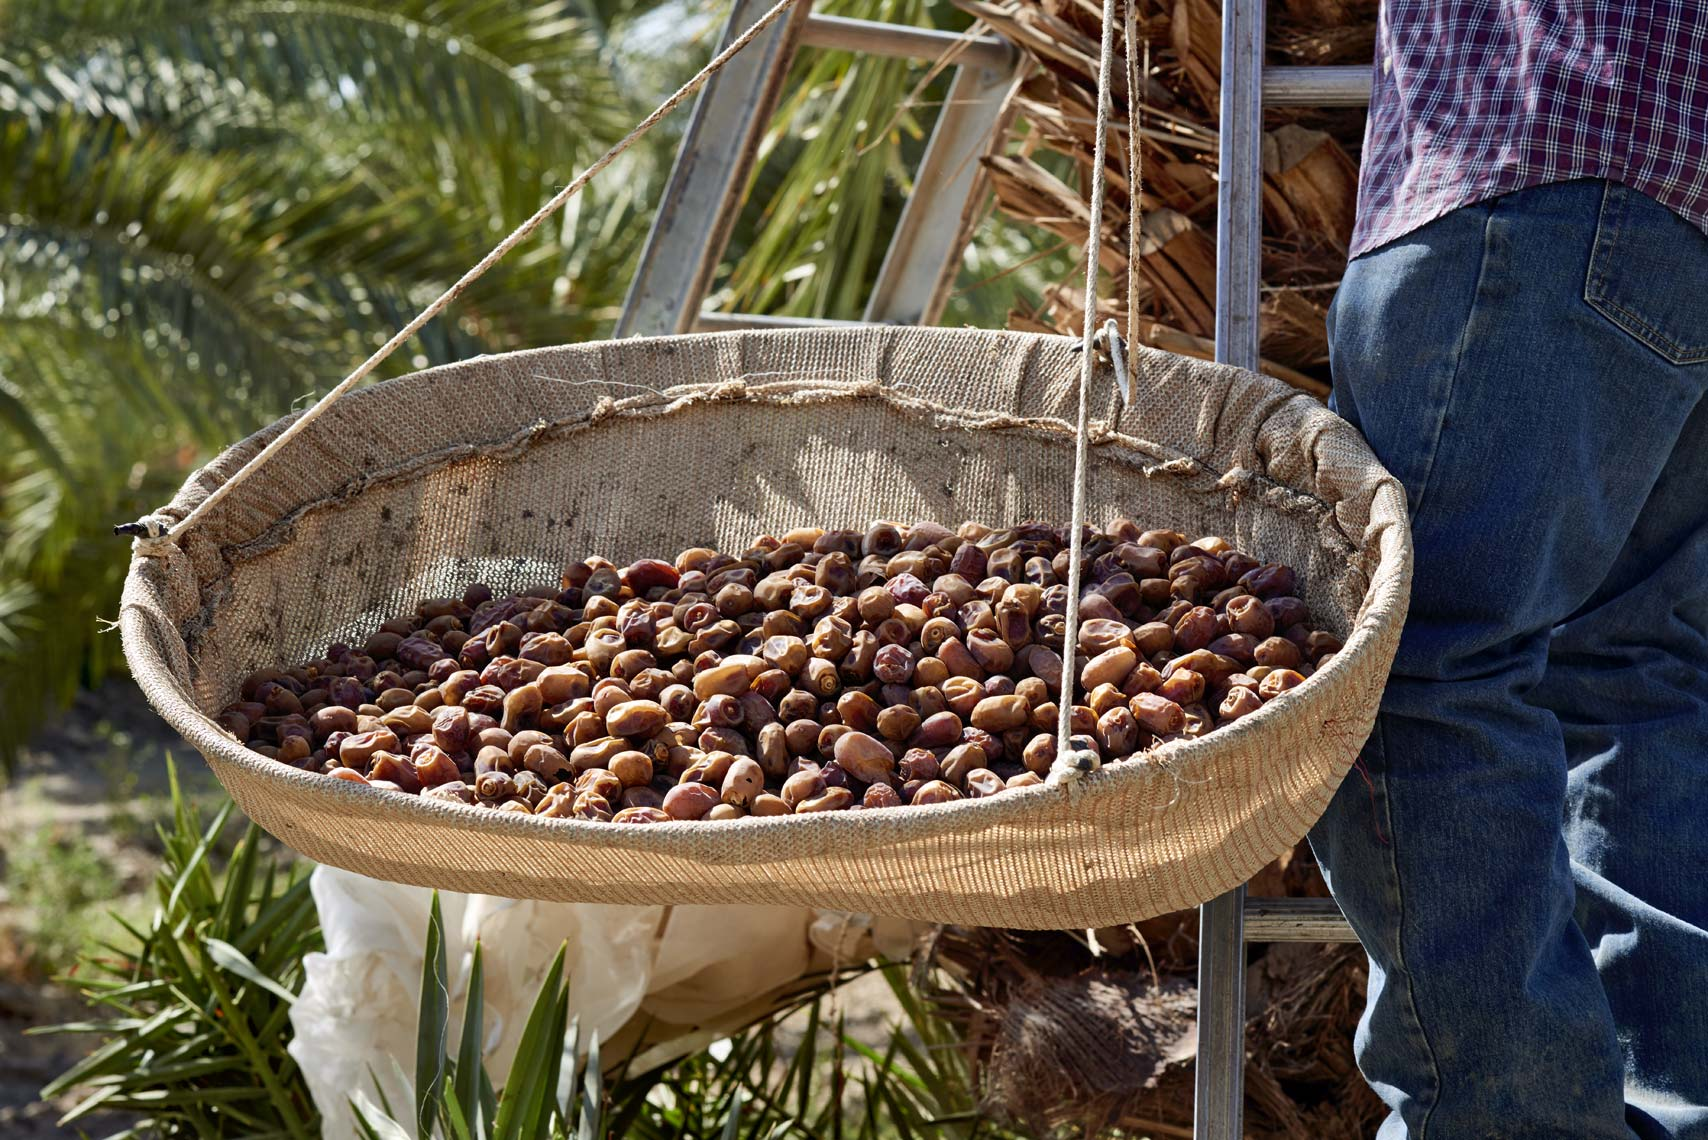 Farmers Harvesting Organic Dates